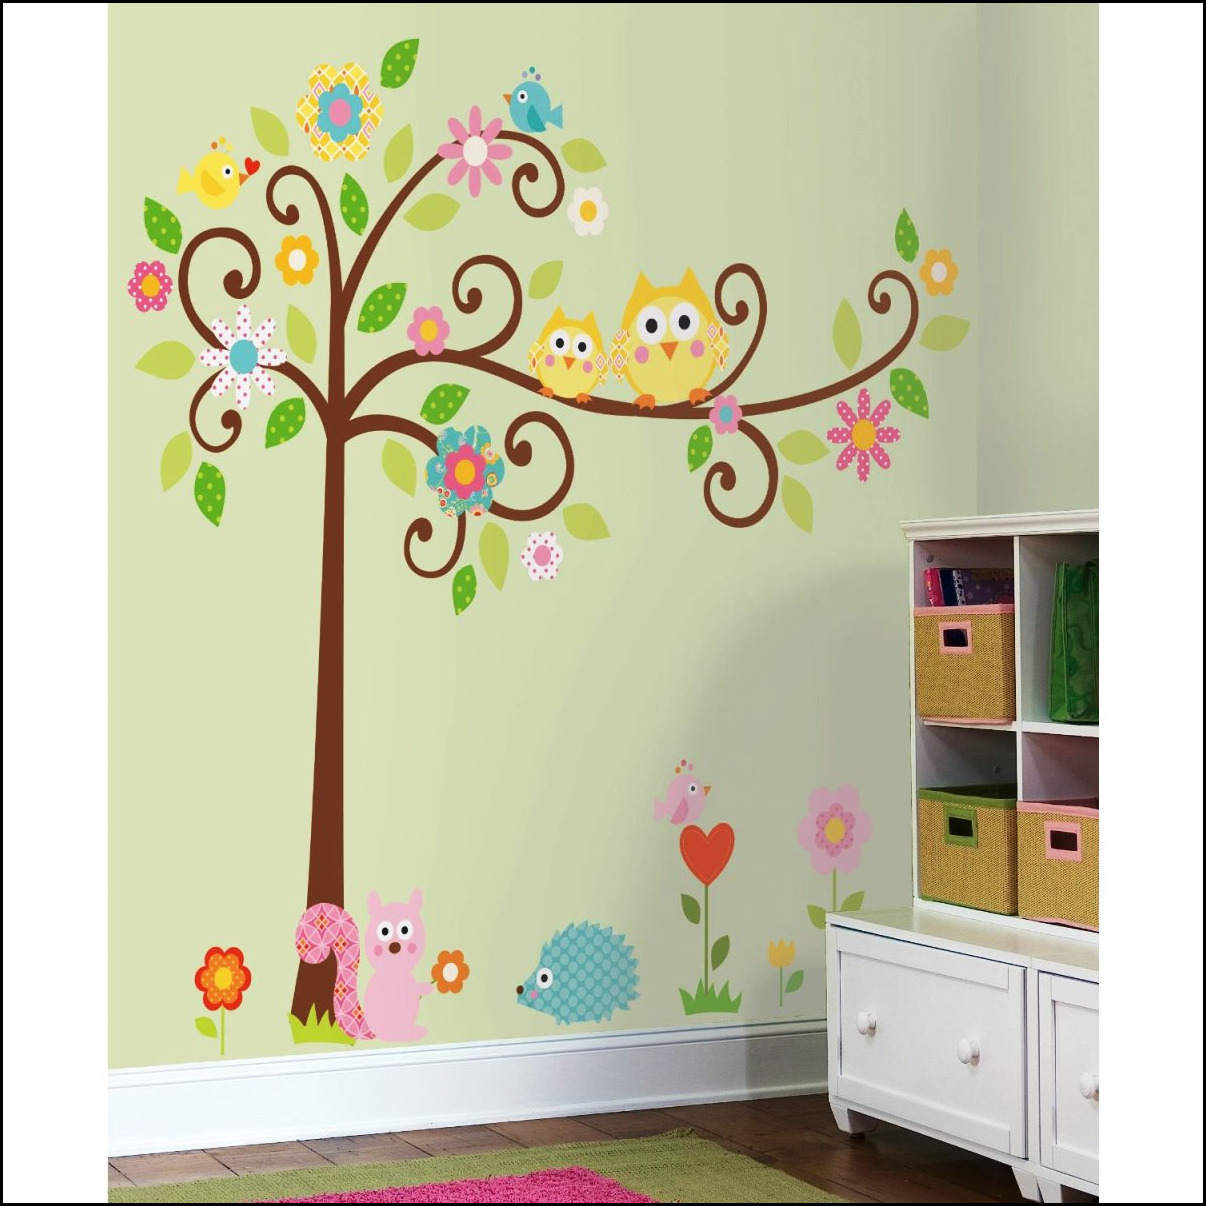 Unique Diy Wall Art Ideas Pinterest Embellishment - The Wall Art ...